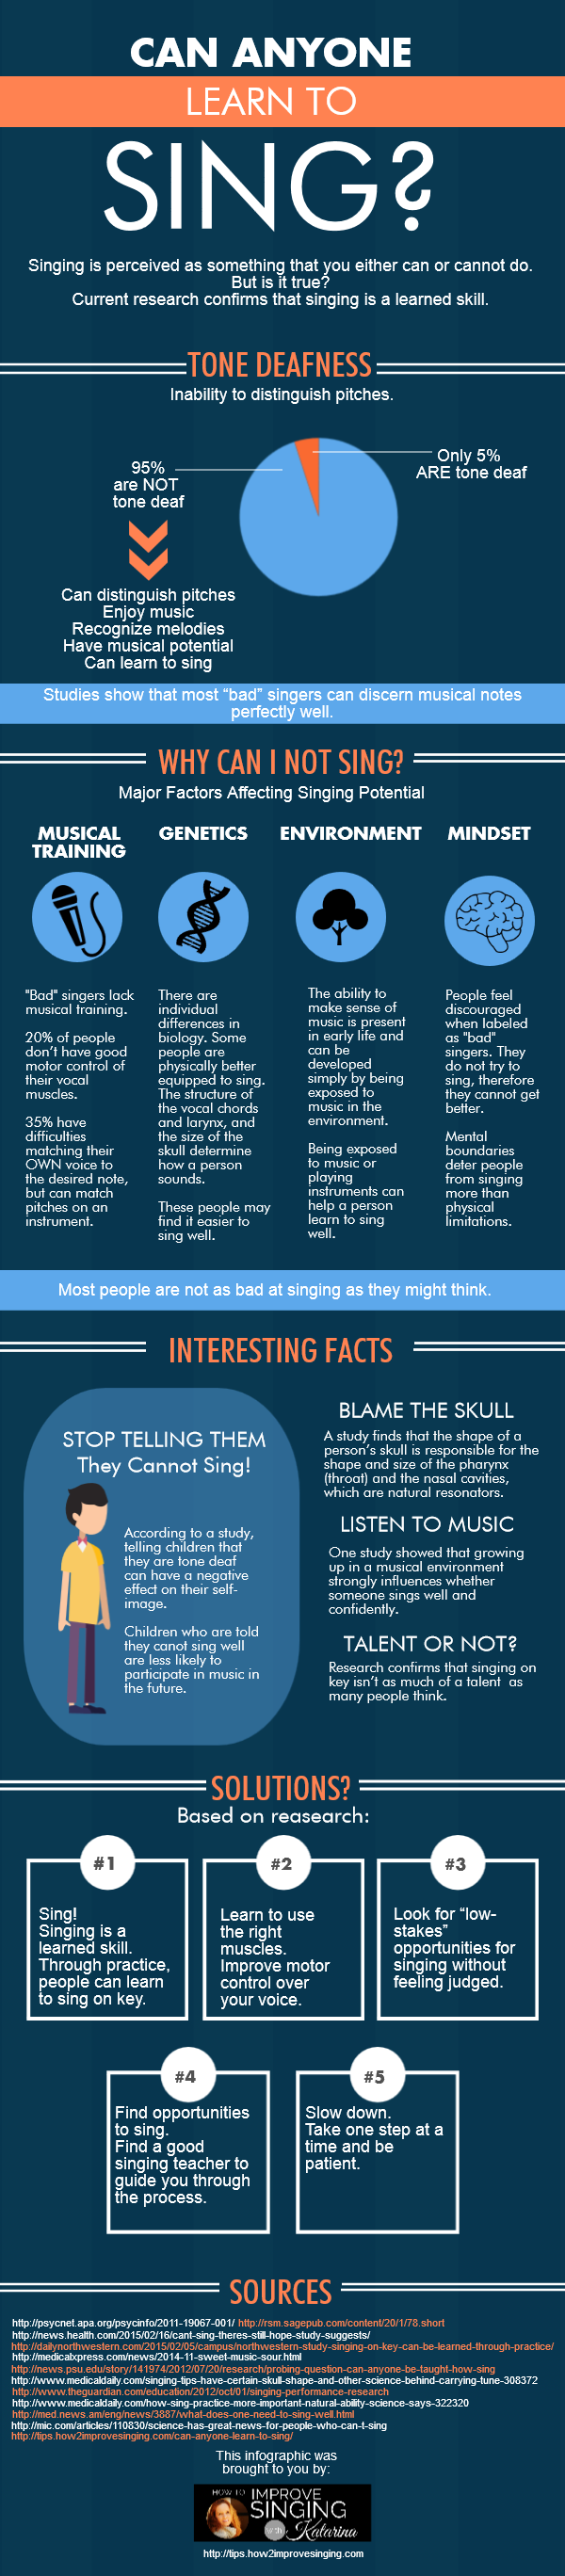 Singing Infographic - Can anyone learn to sing